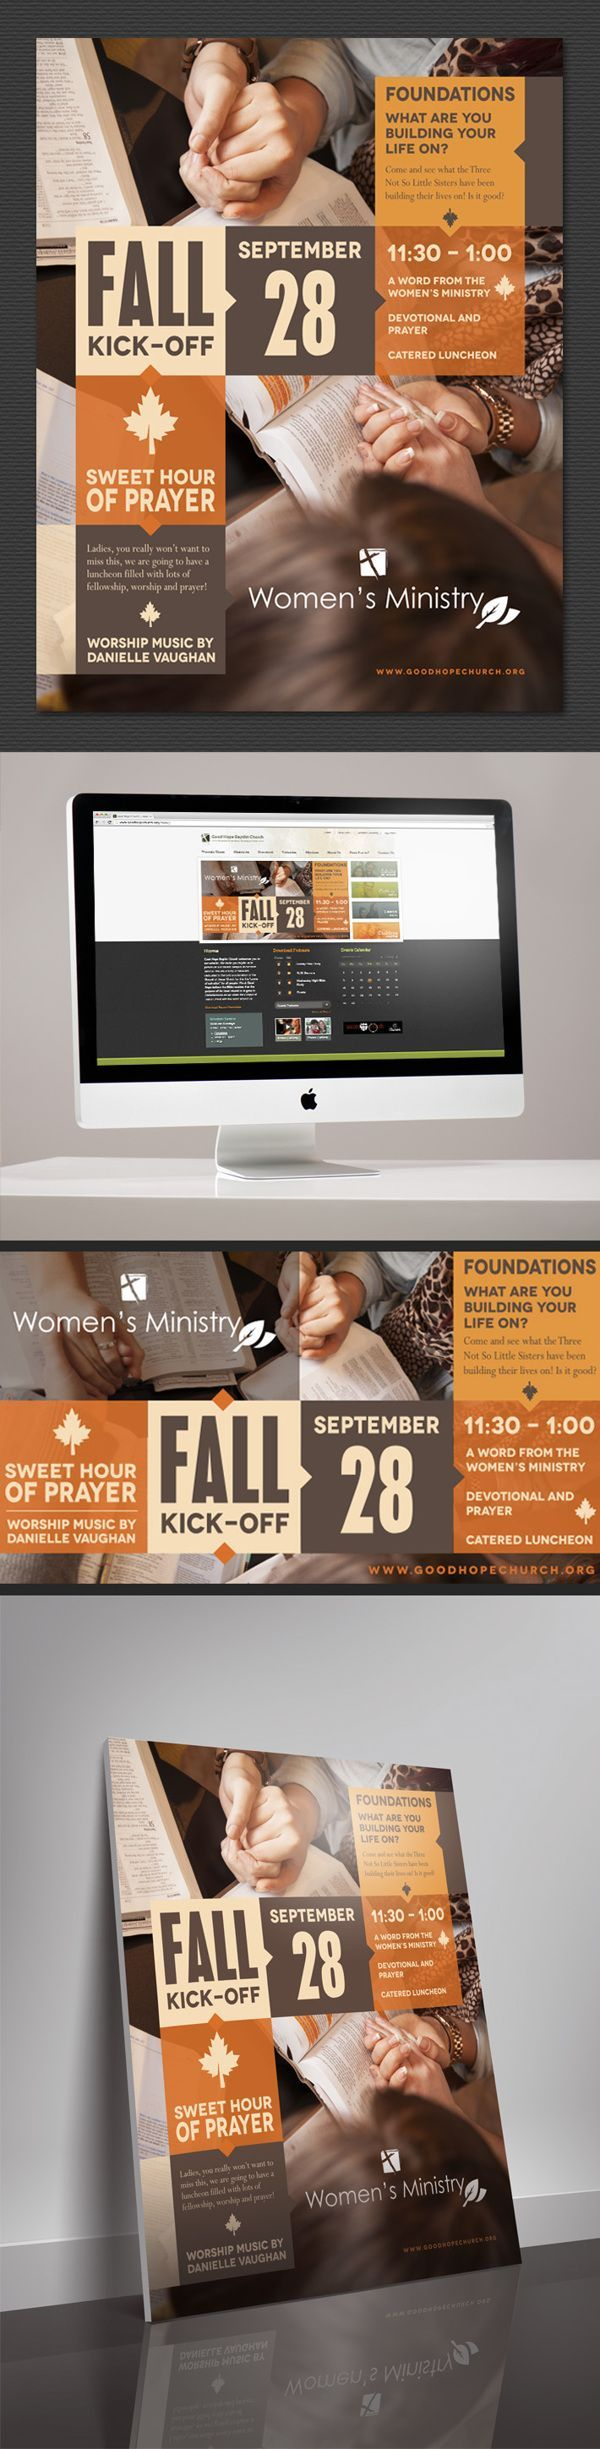 GHBC Fall Event Graphics by Carolina Reprographics